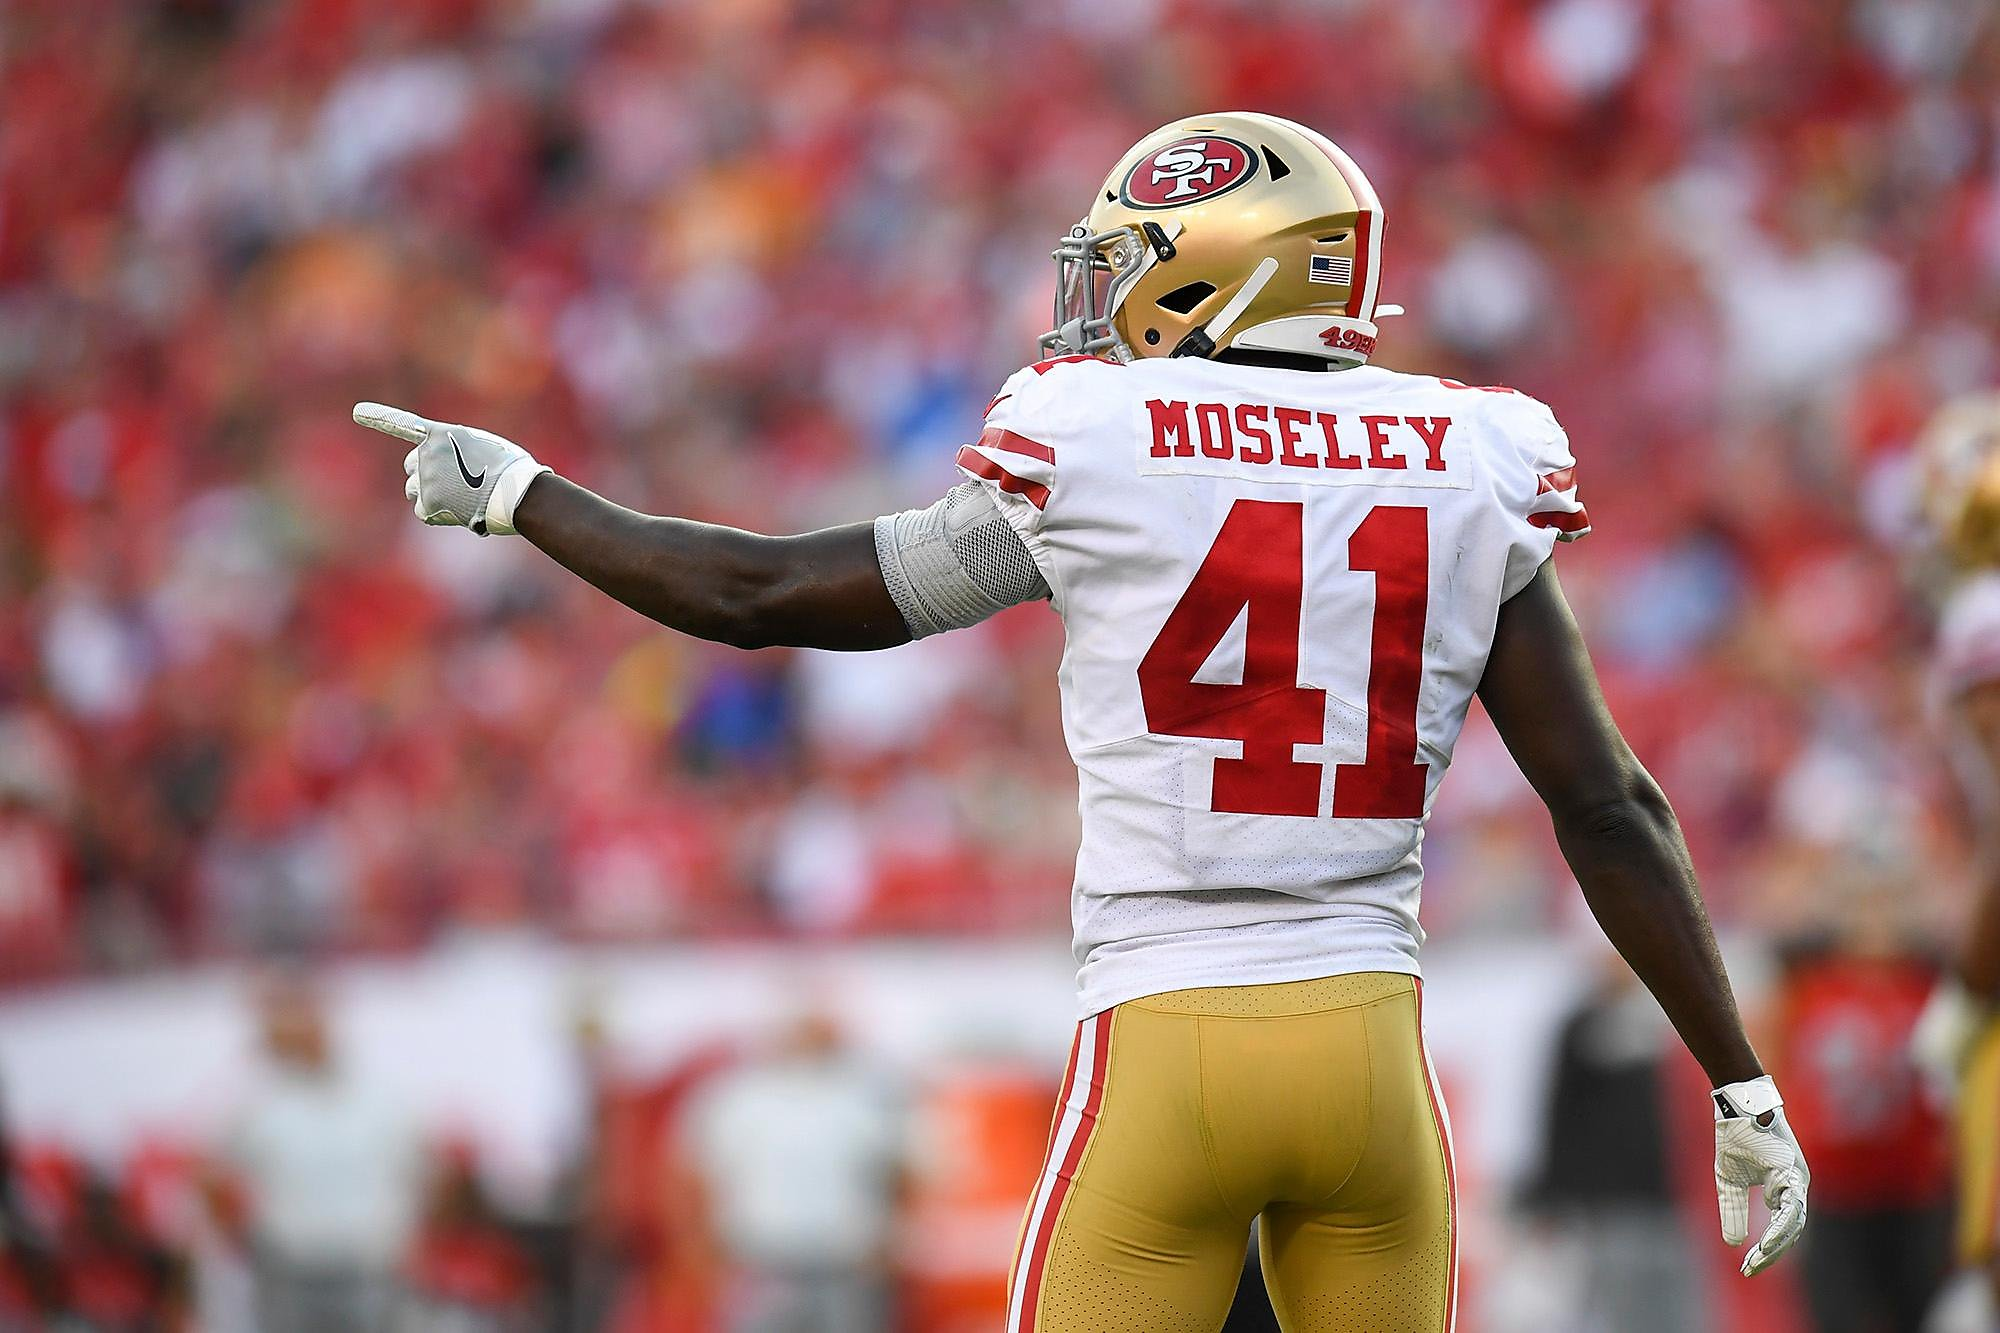 49ers' Emmanuel Moseley is 'unflappable'